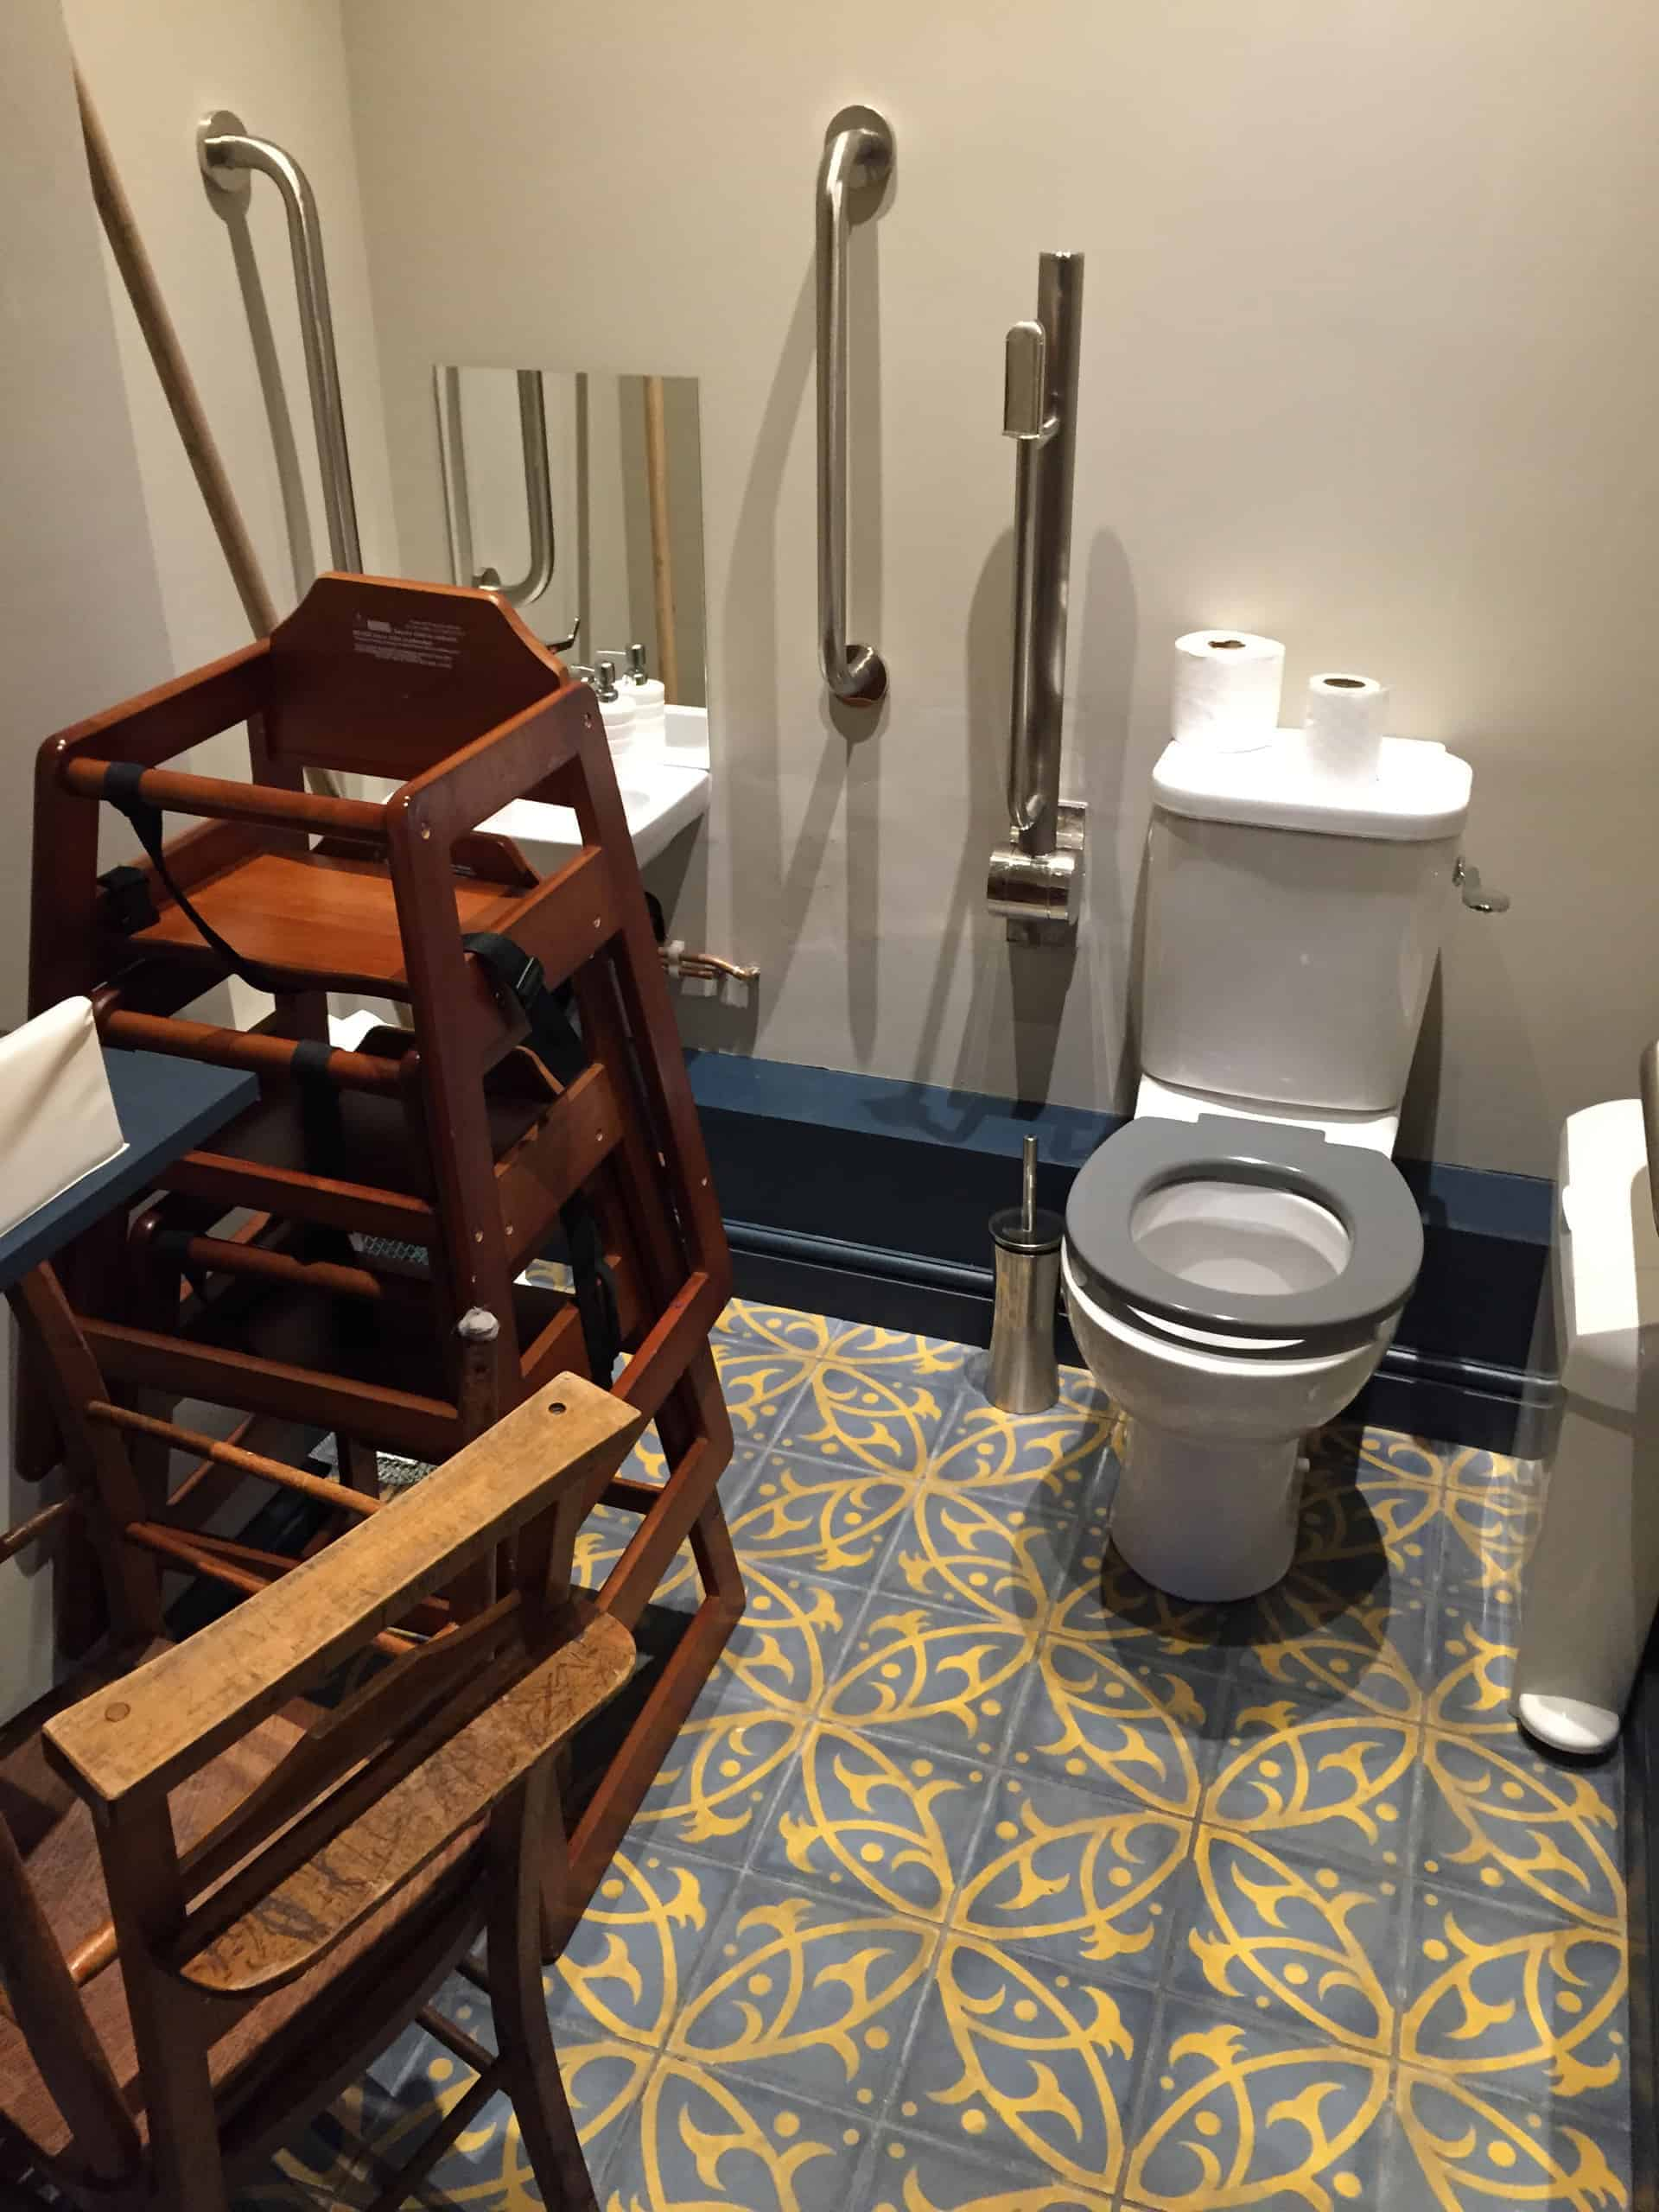 Ludicrous Loo? How do You Get to the Washbasin??